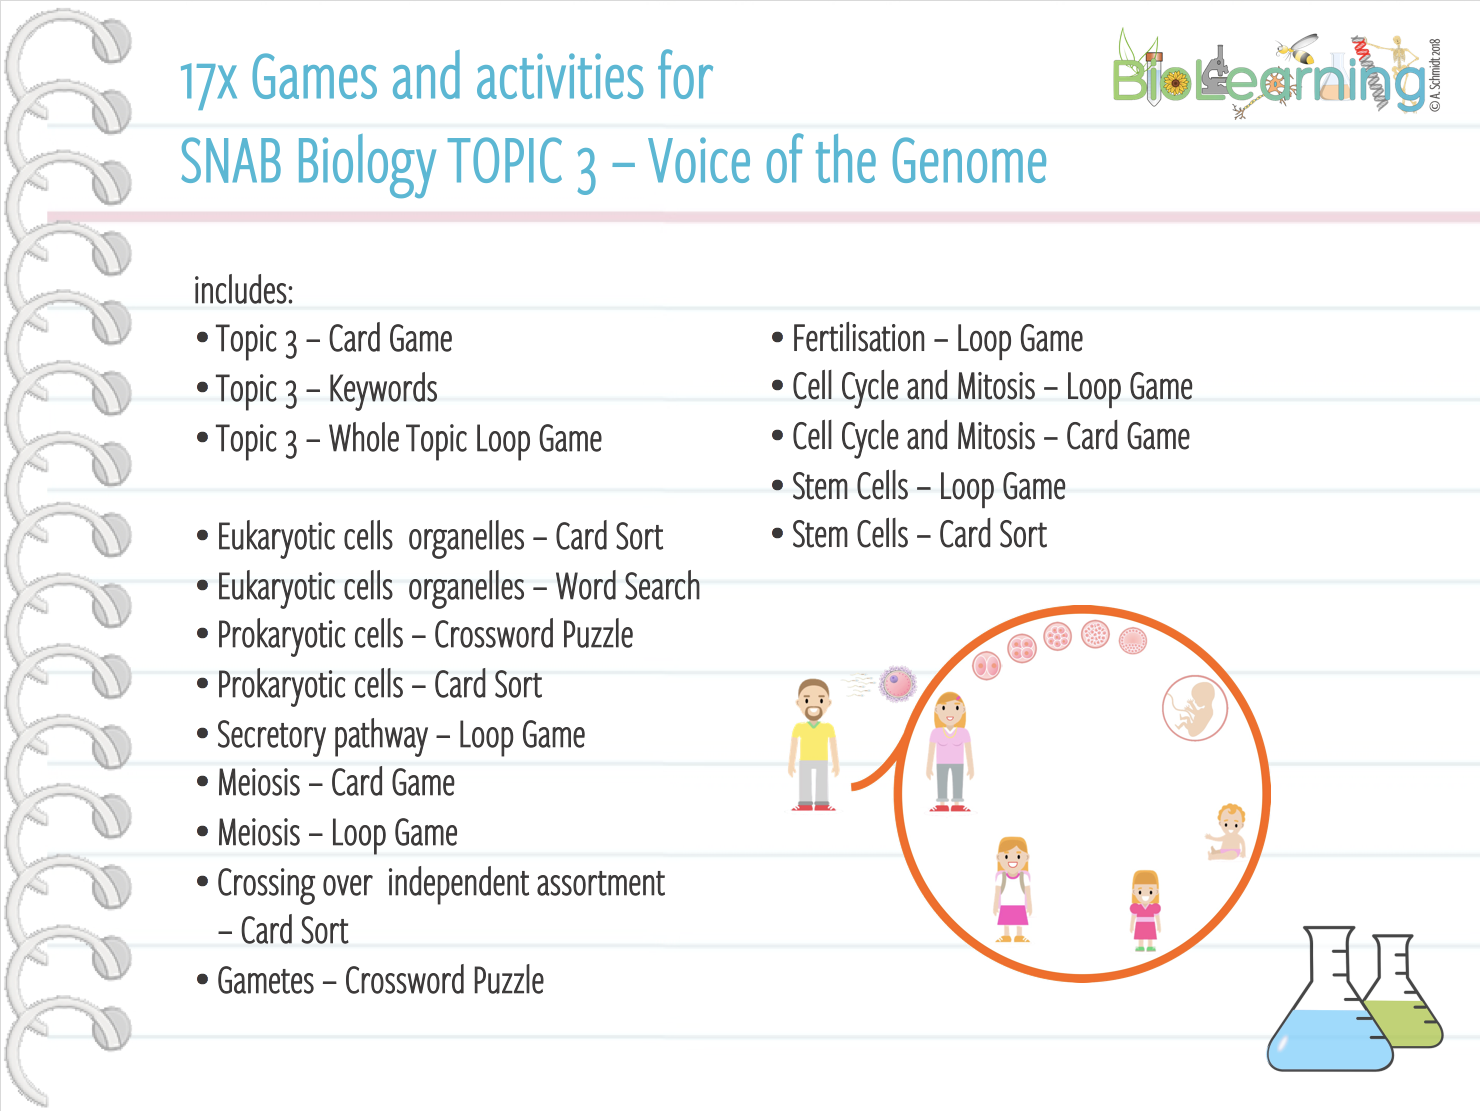 17x Games and activities for SNAB TOPIC 3 – Voice of the Genome